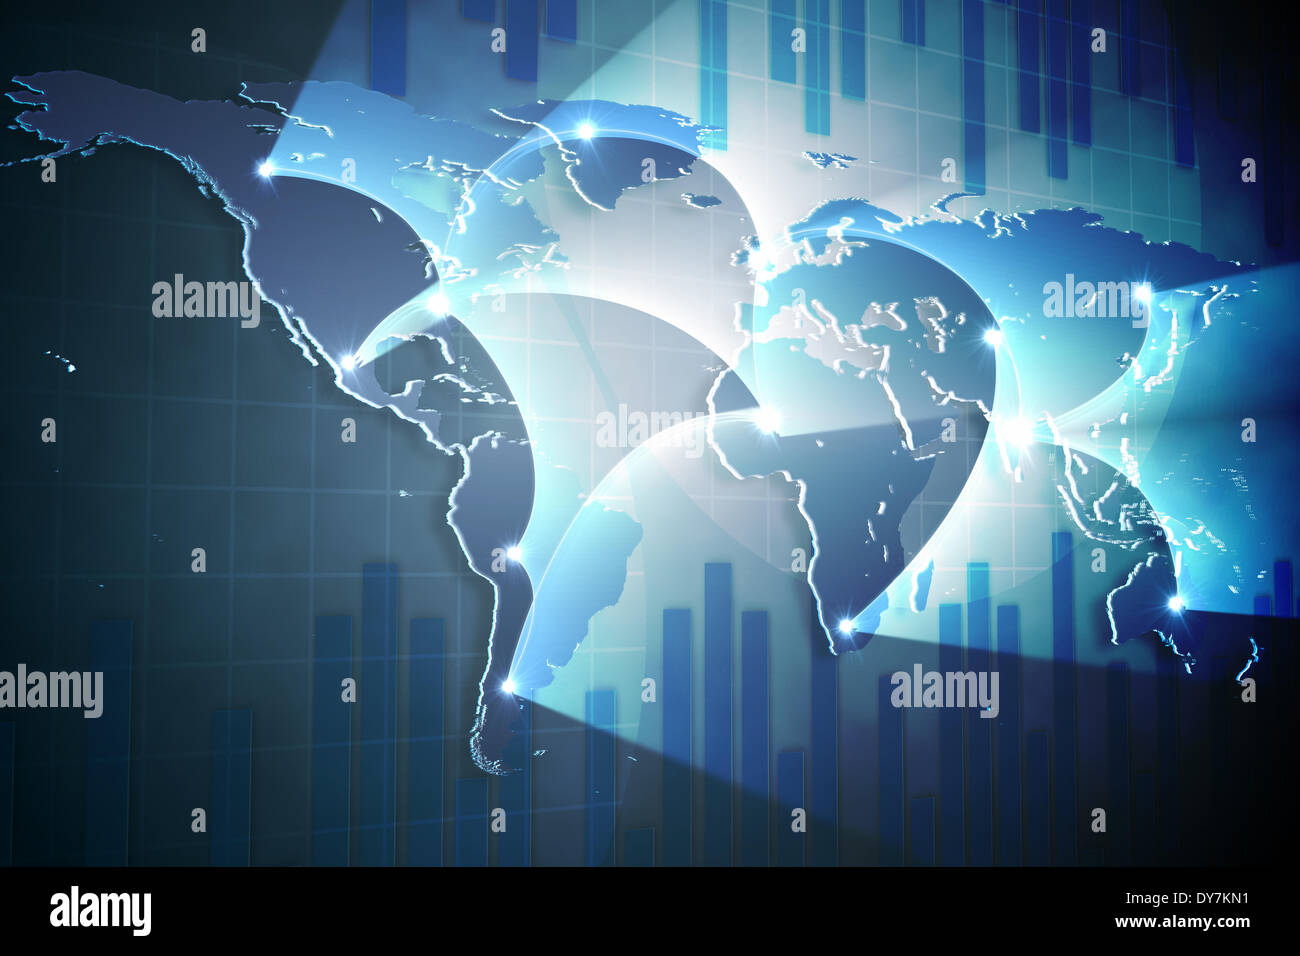 Global business graphic in blue - Stock Image